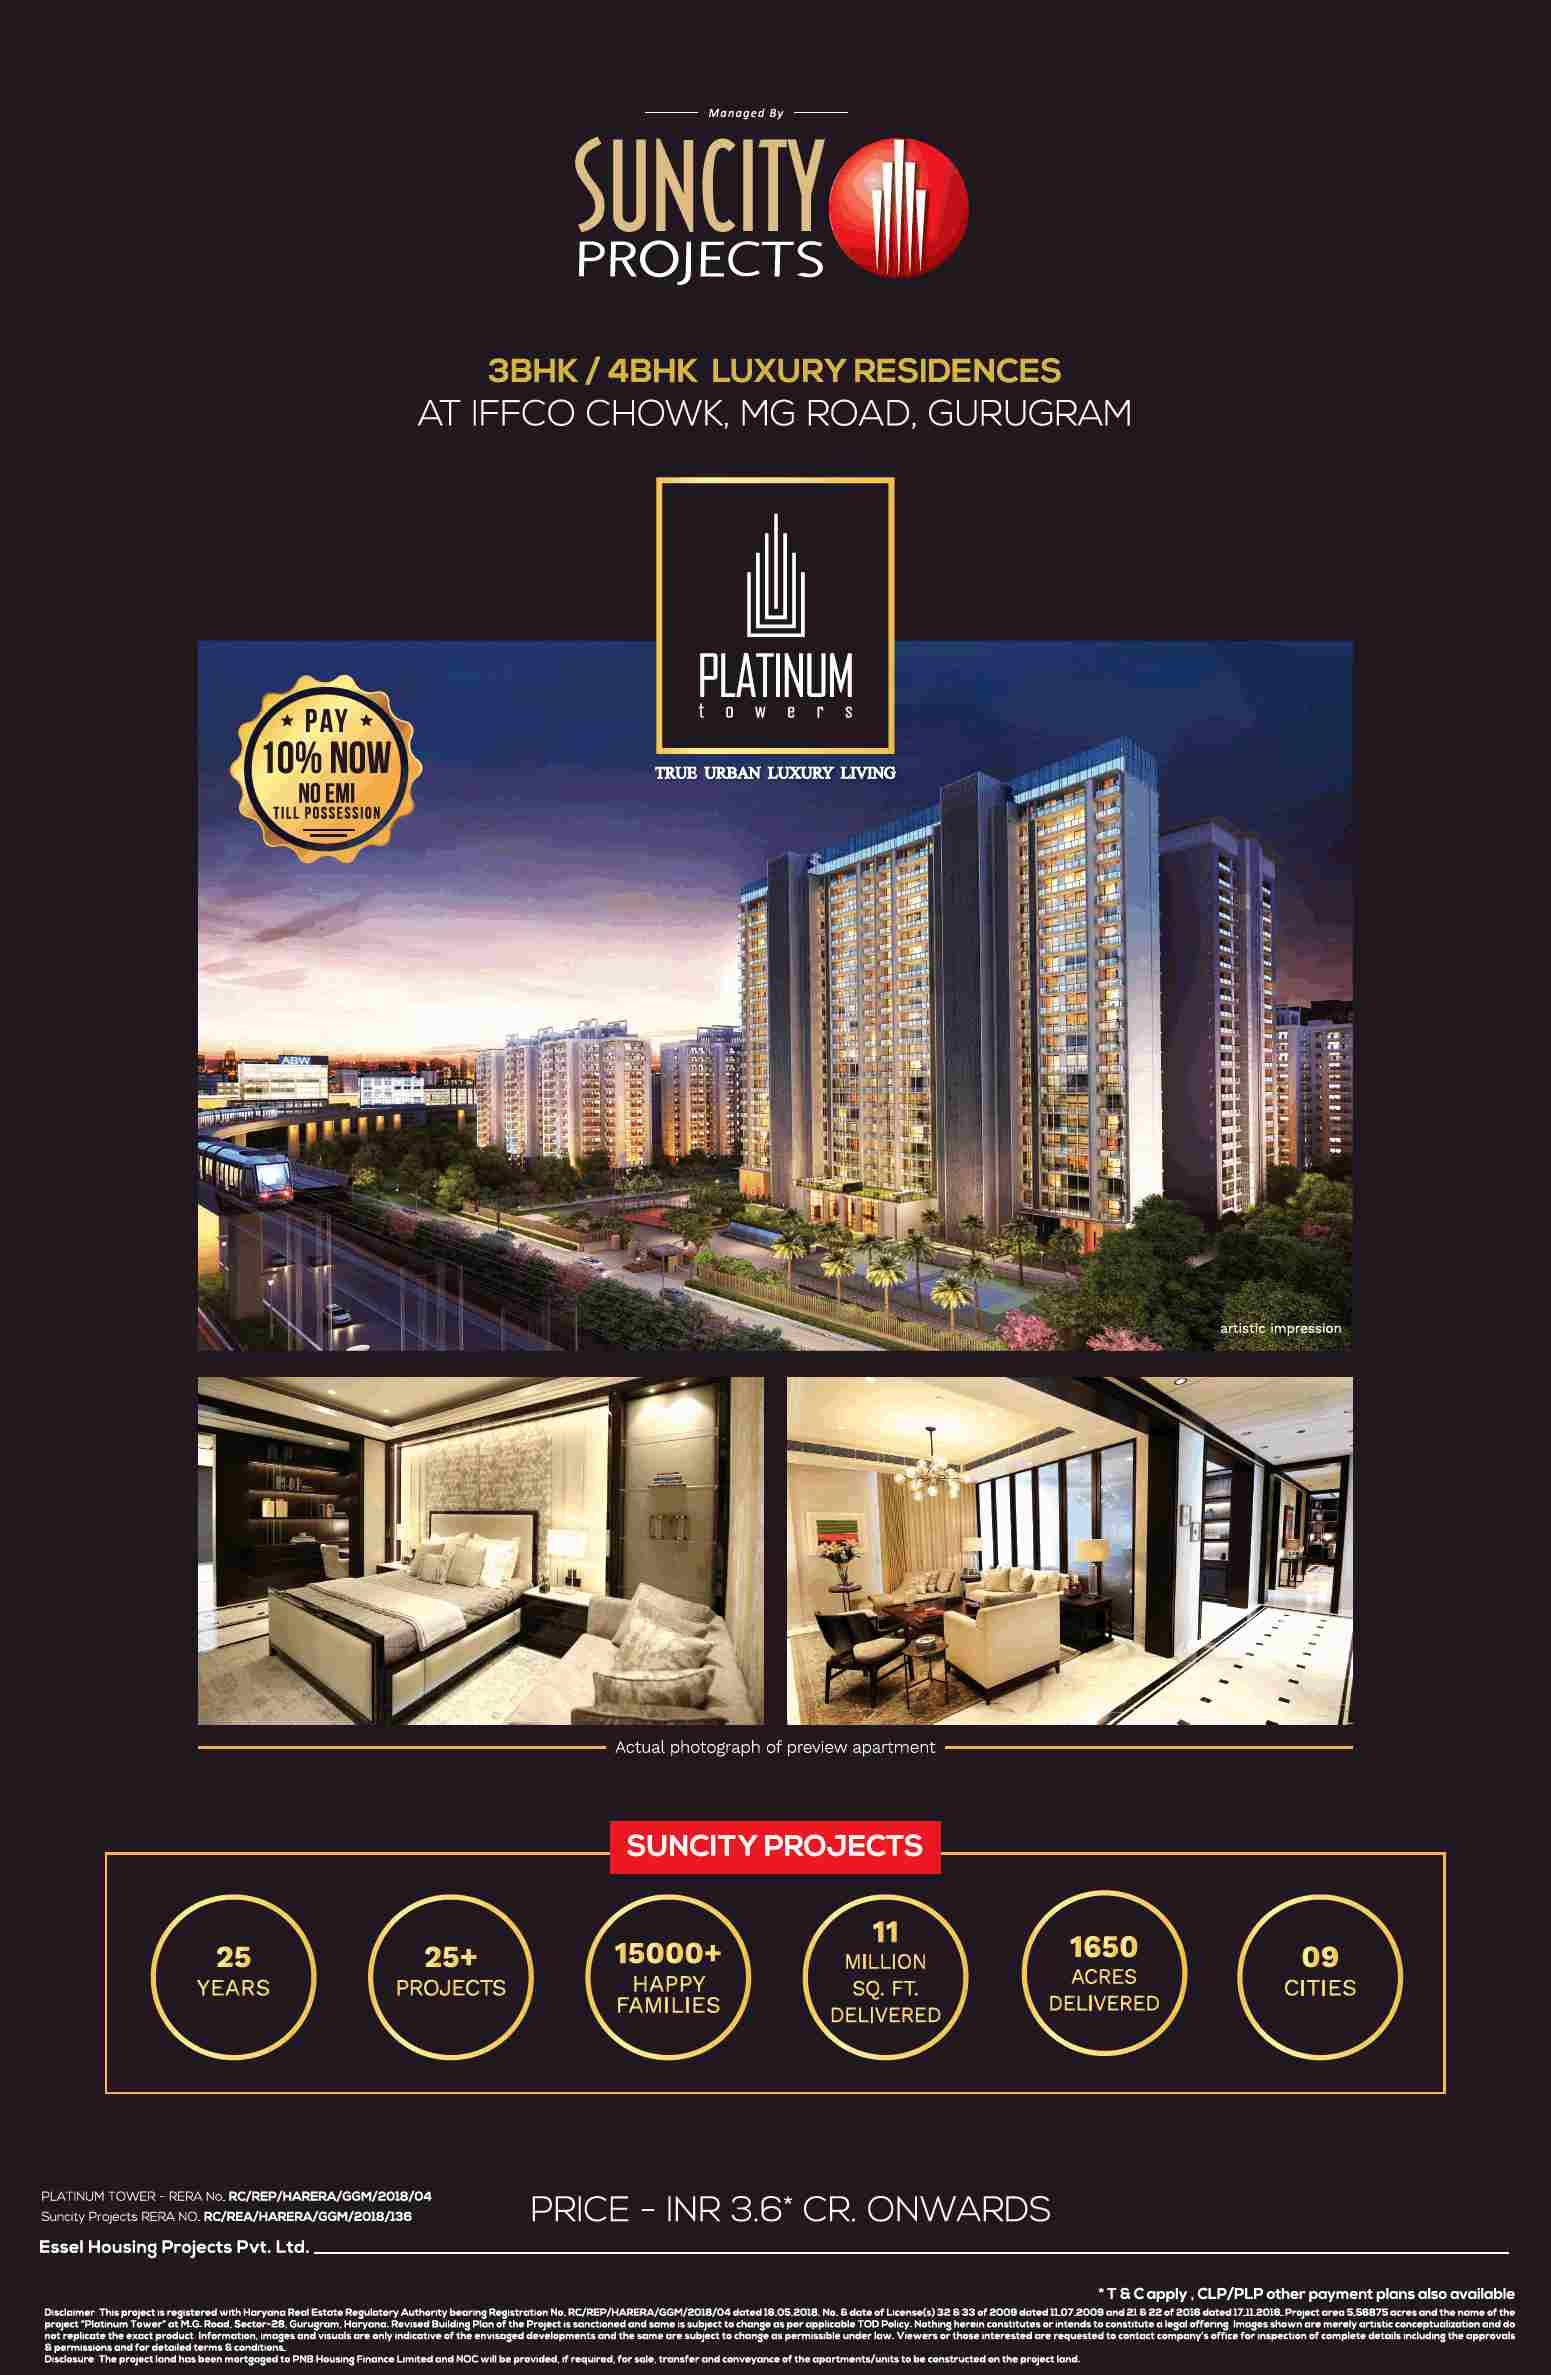 Book 3 4 BHK luxury residences Rs 3 6 cr at Suncity Platinum Towers in Gurgaon